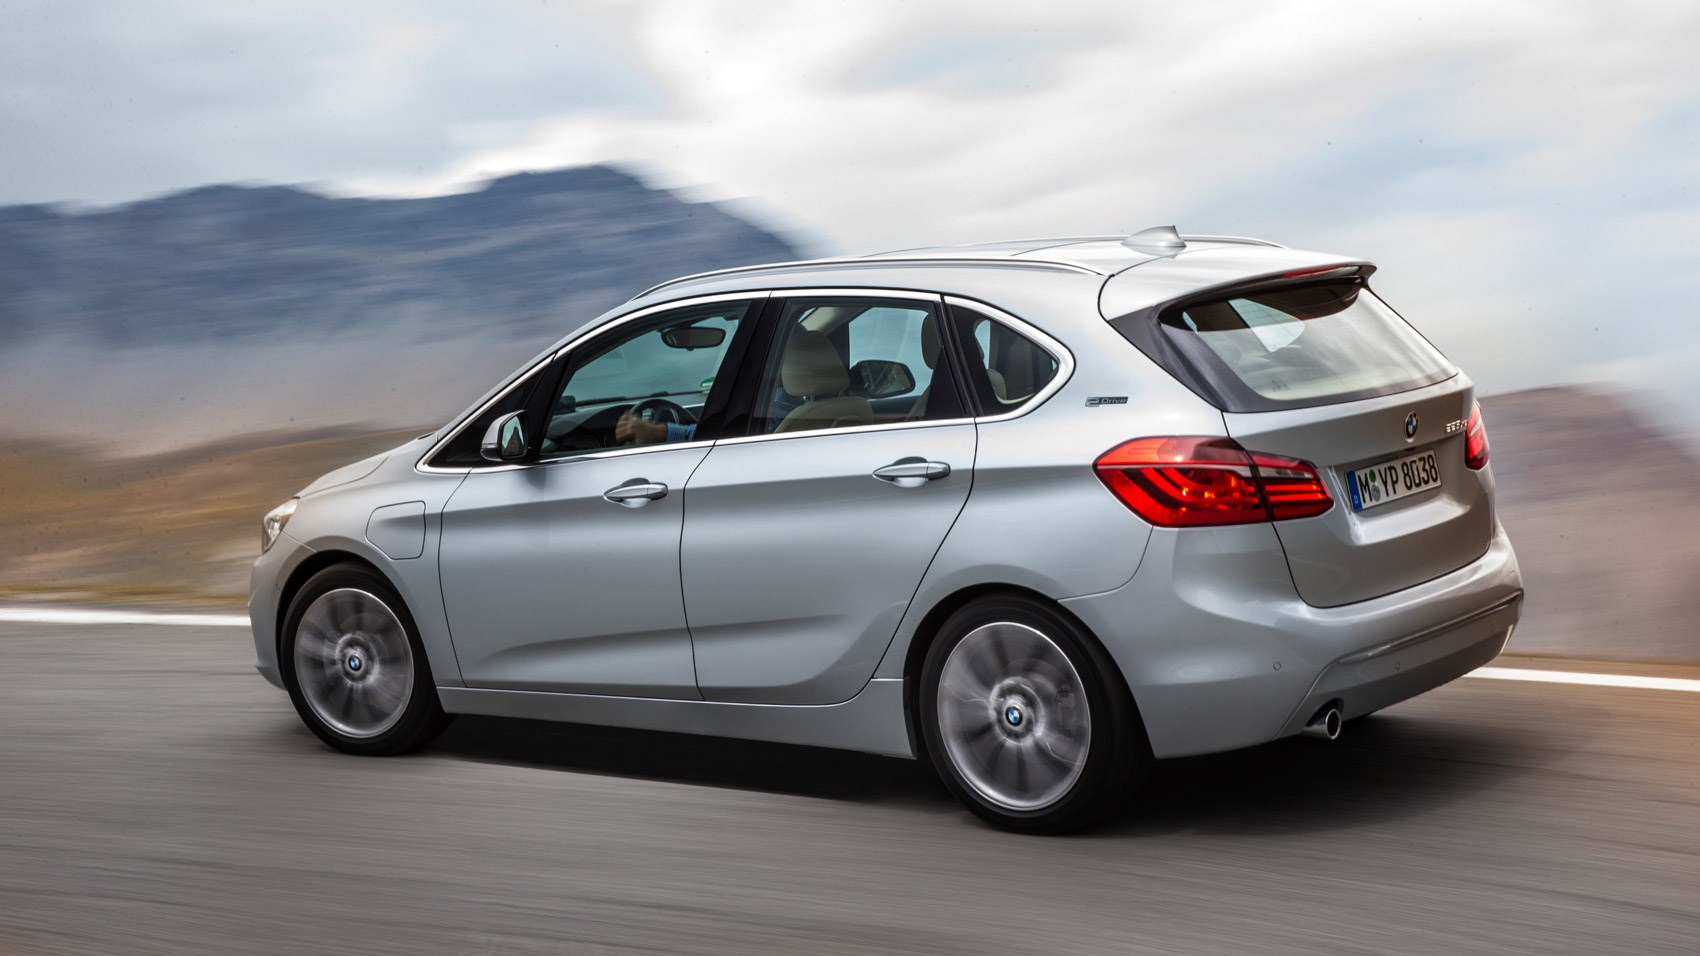 Bmw 220i gran tourer m sport package 2015 wallpapers and hd images - Bmw 2 Series Active Tourer 225xe 2016 Review